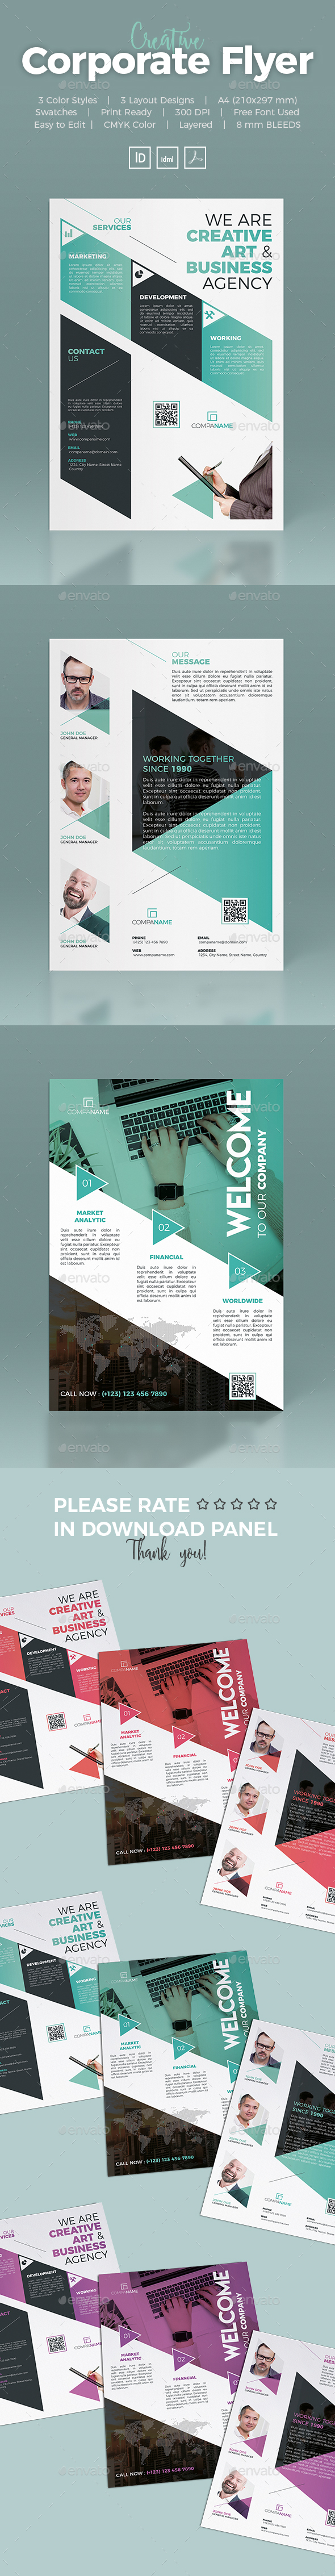 Corporate Flyer 3 layout - Corporate Flyers